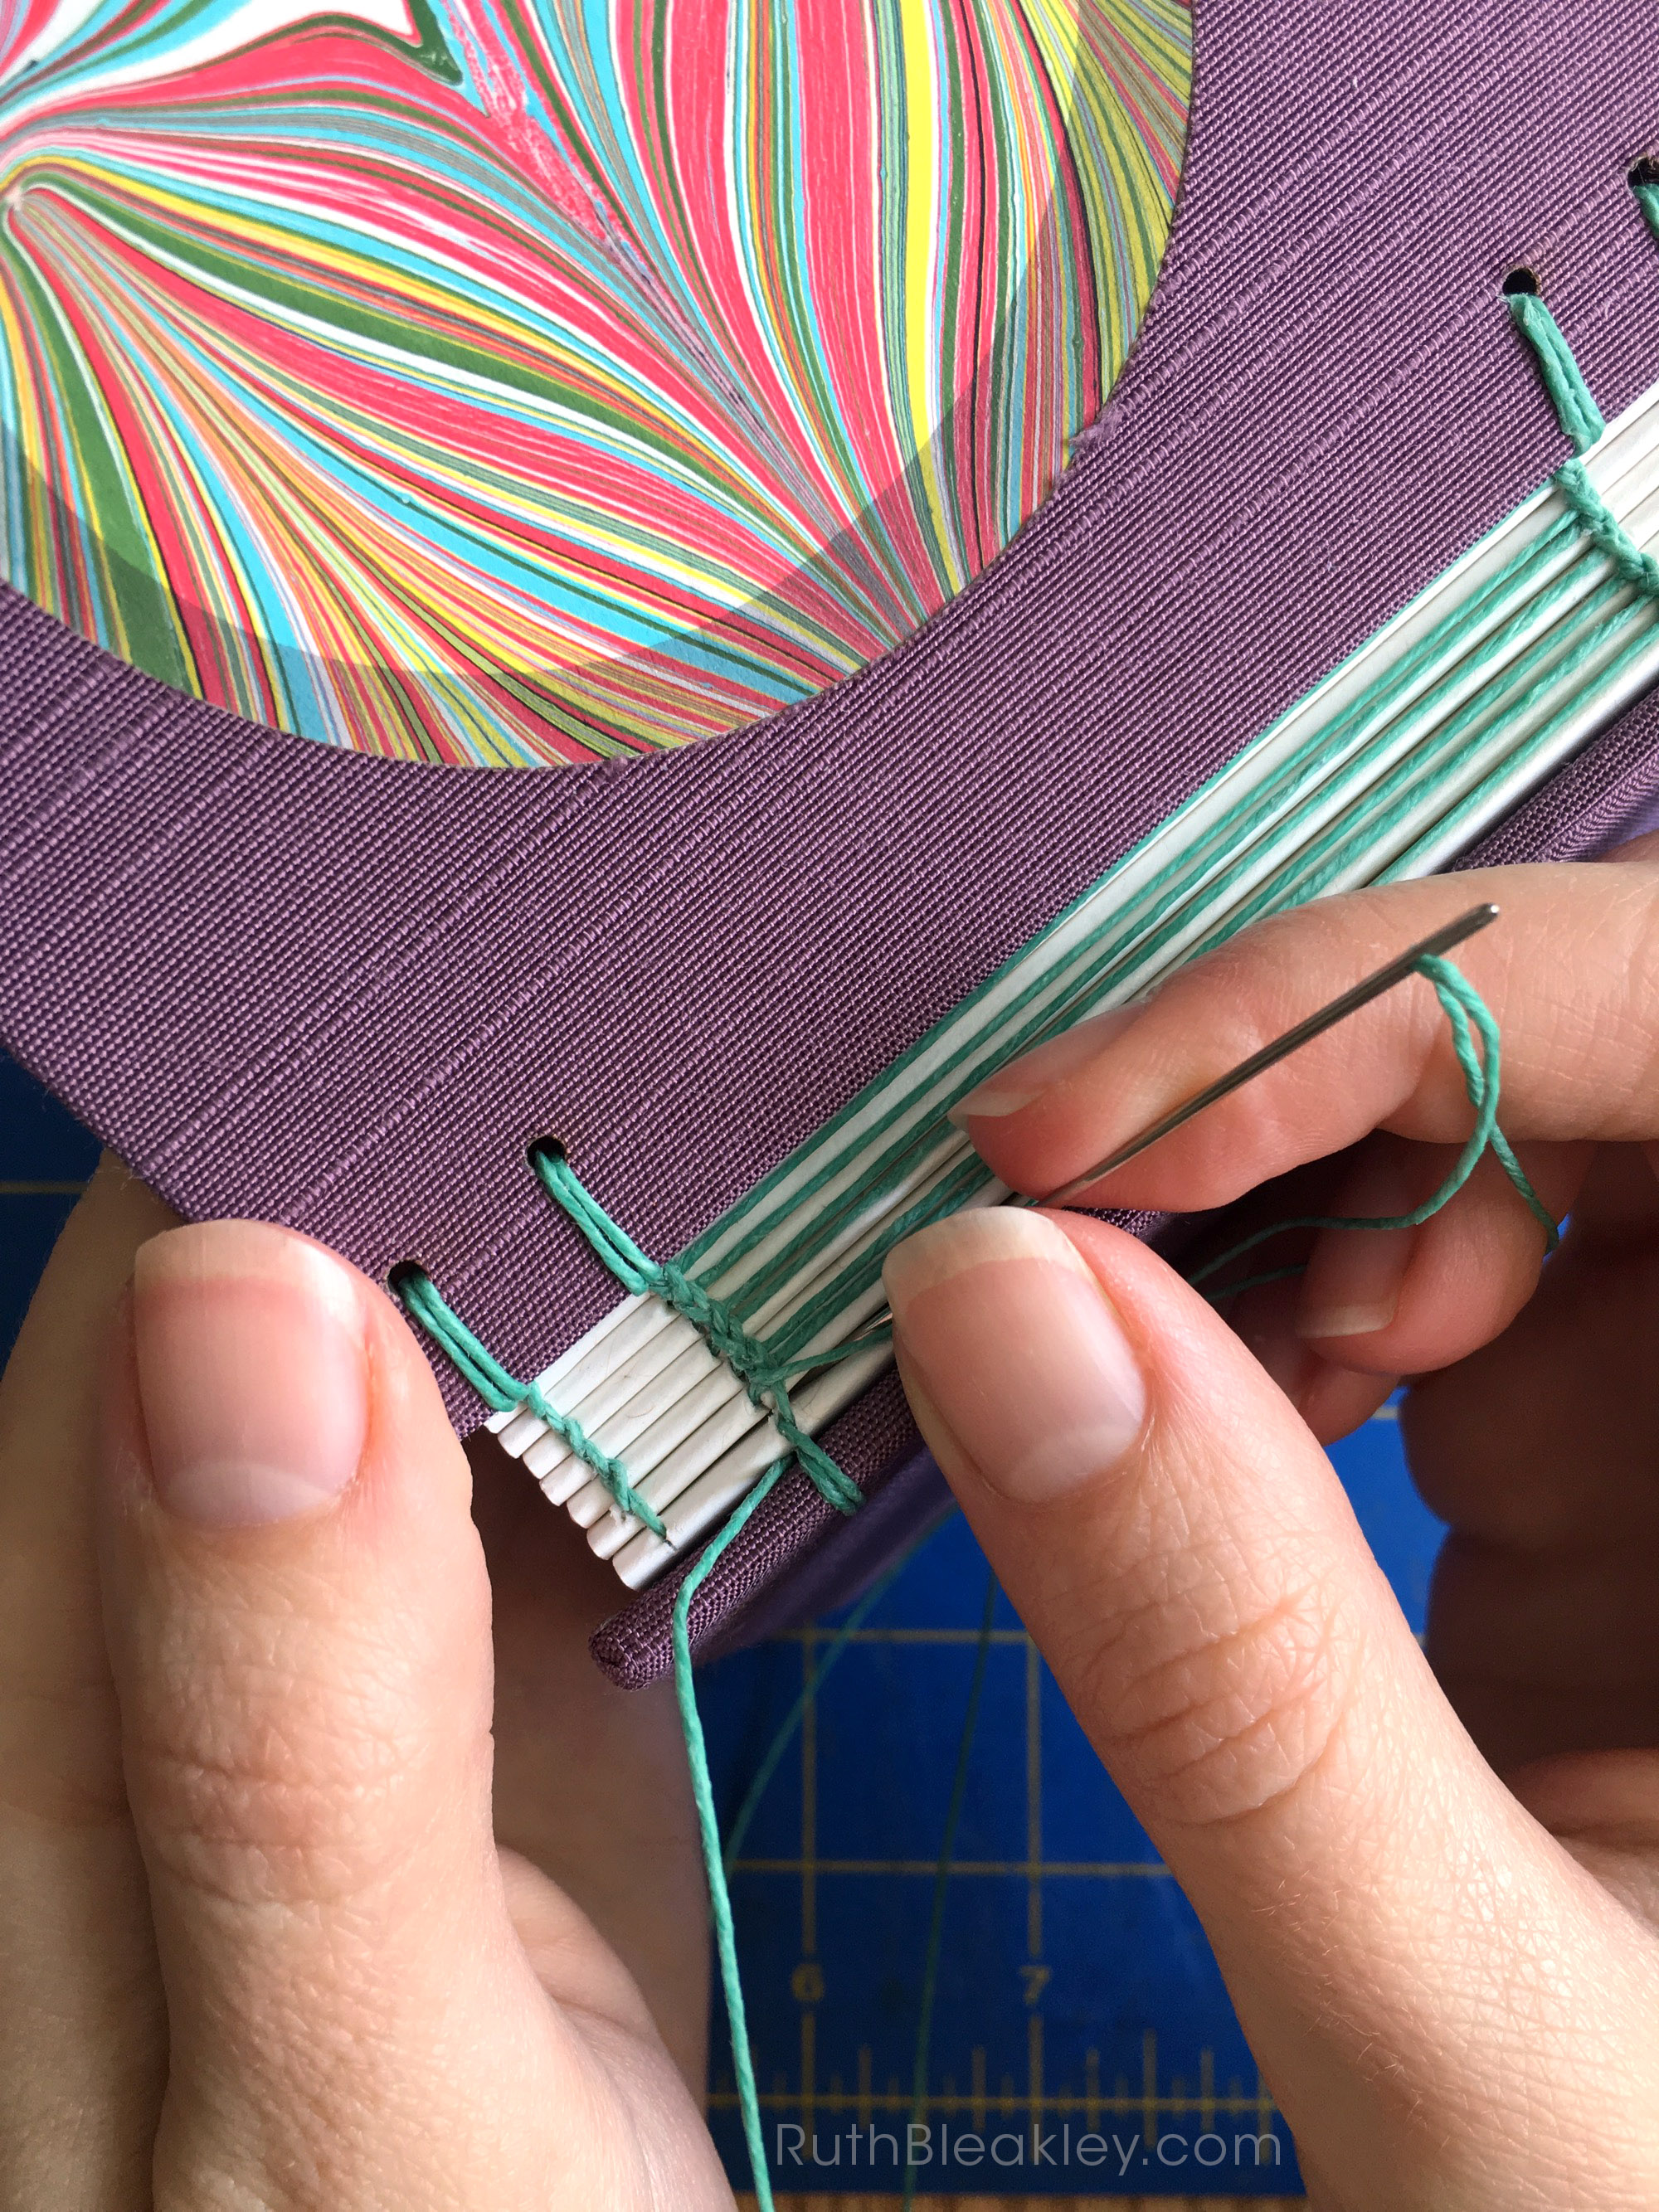 sewing a book together bookbinding process by Ruth Bleakley